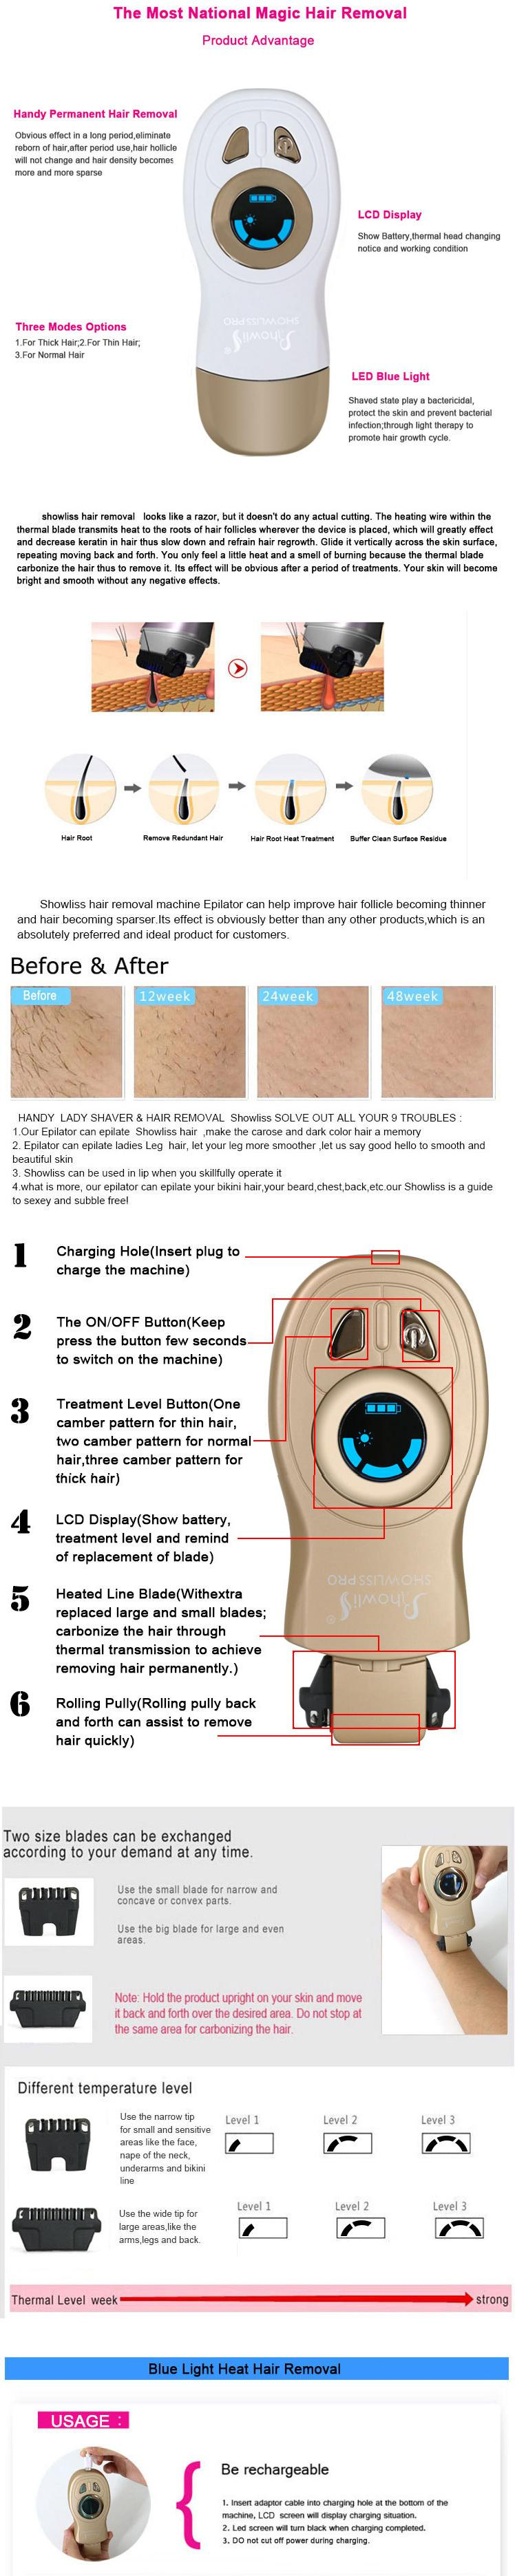 showliss pro hair removal instructions